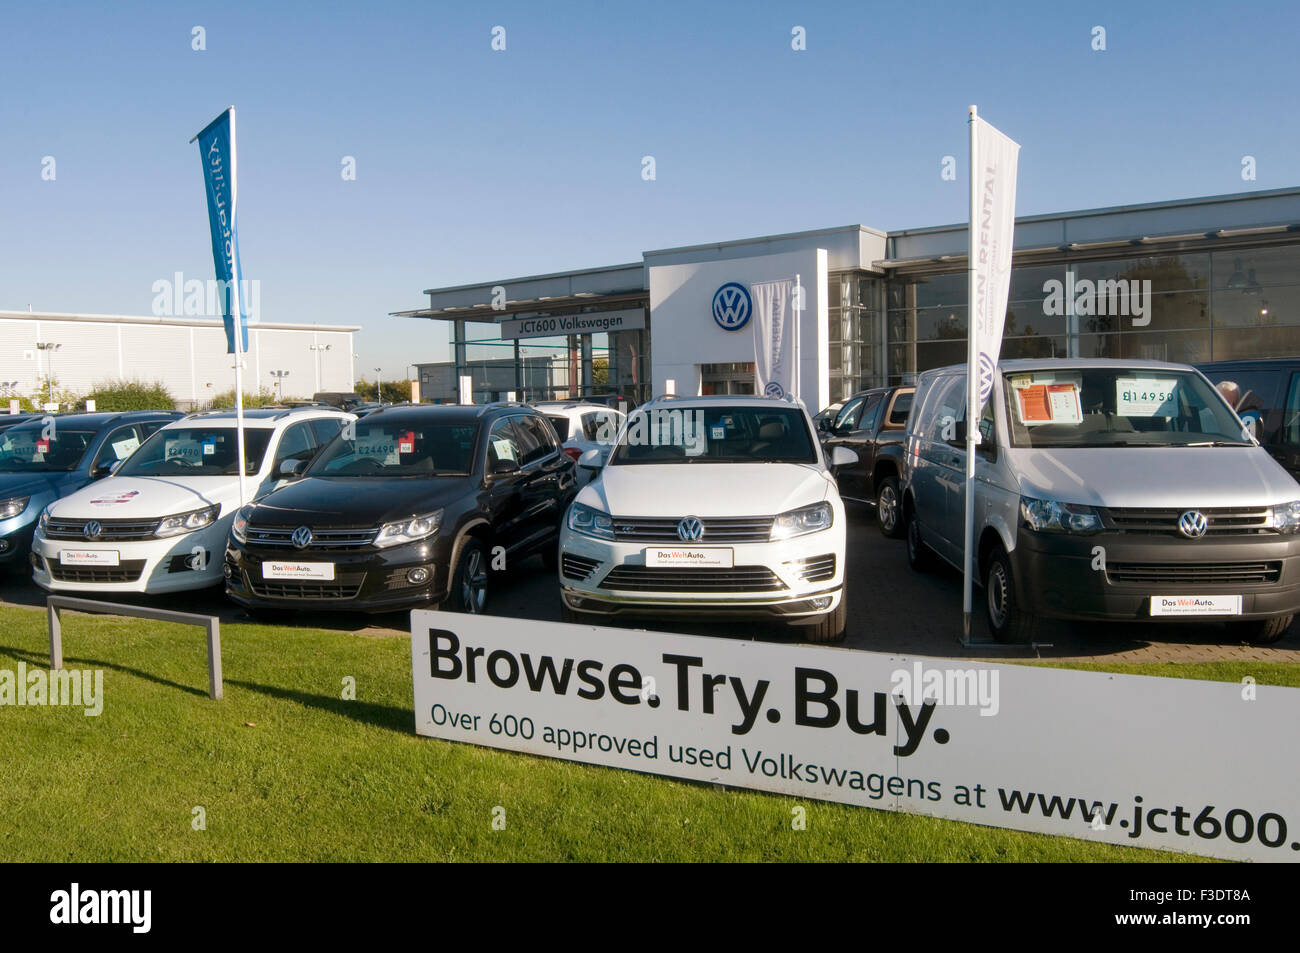 tiguan dealer primary owned pre image new automobiles photo volkswagen vancouver used bc listing